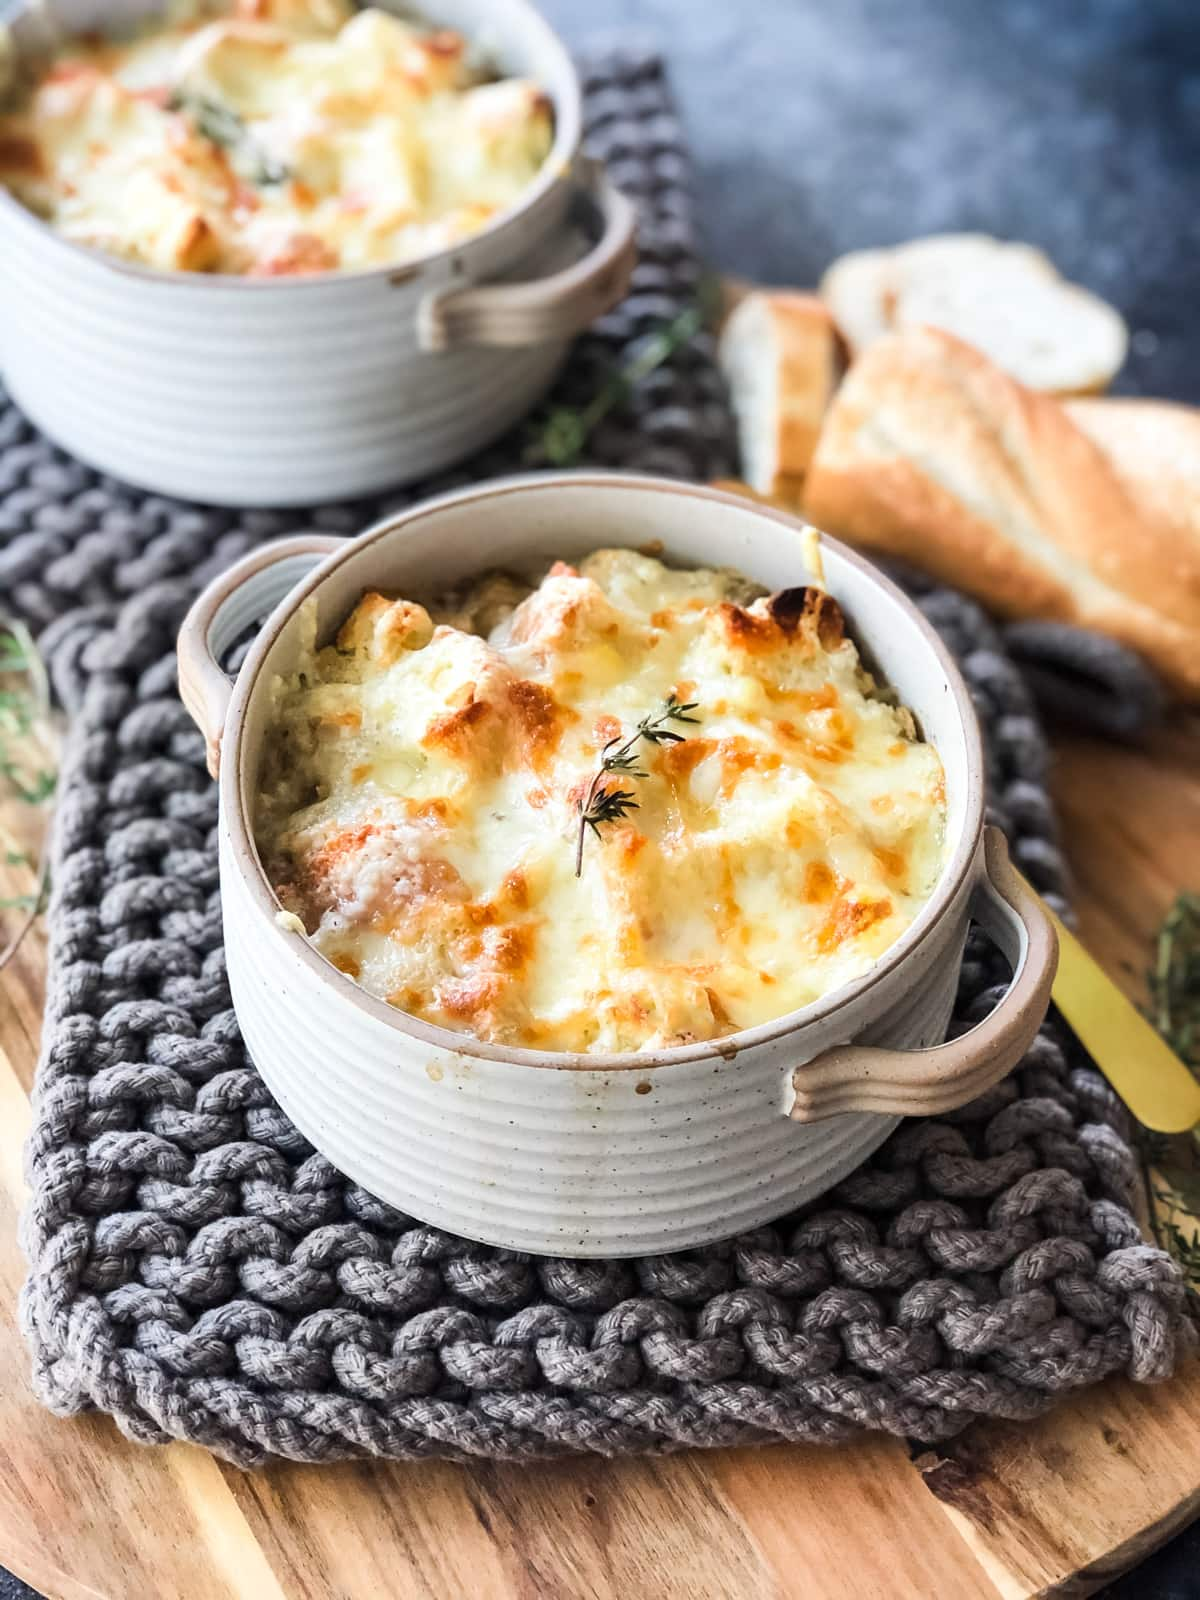 Two bowls of French Onion Soup topped with a cheesy bread crust.